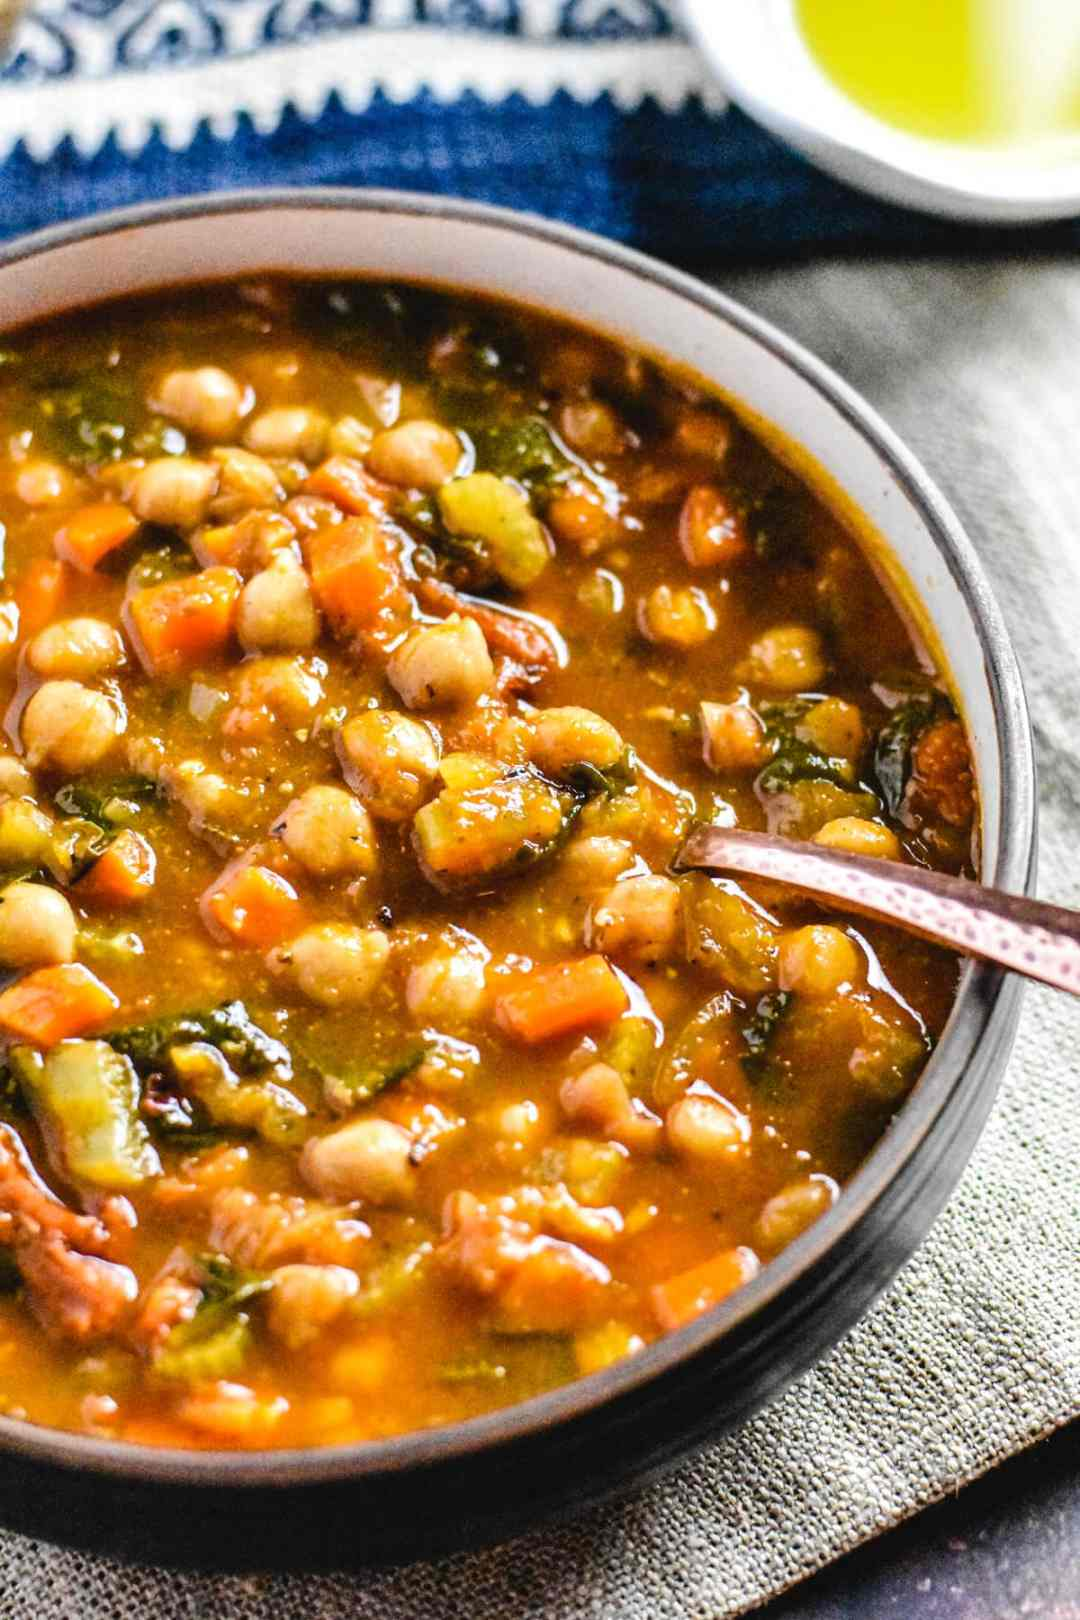 A slice of toasted baguette soaking in Moroccan Chickpea Soup bowl